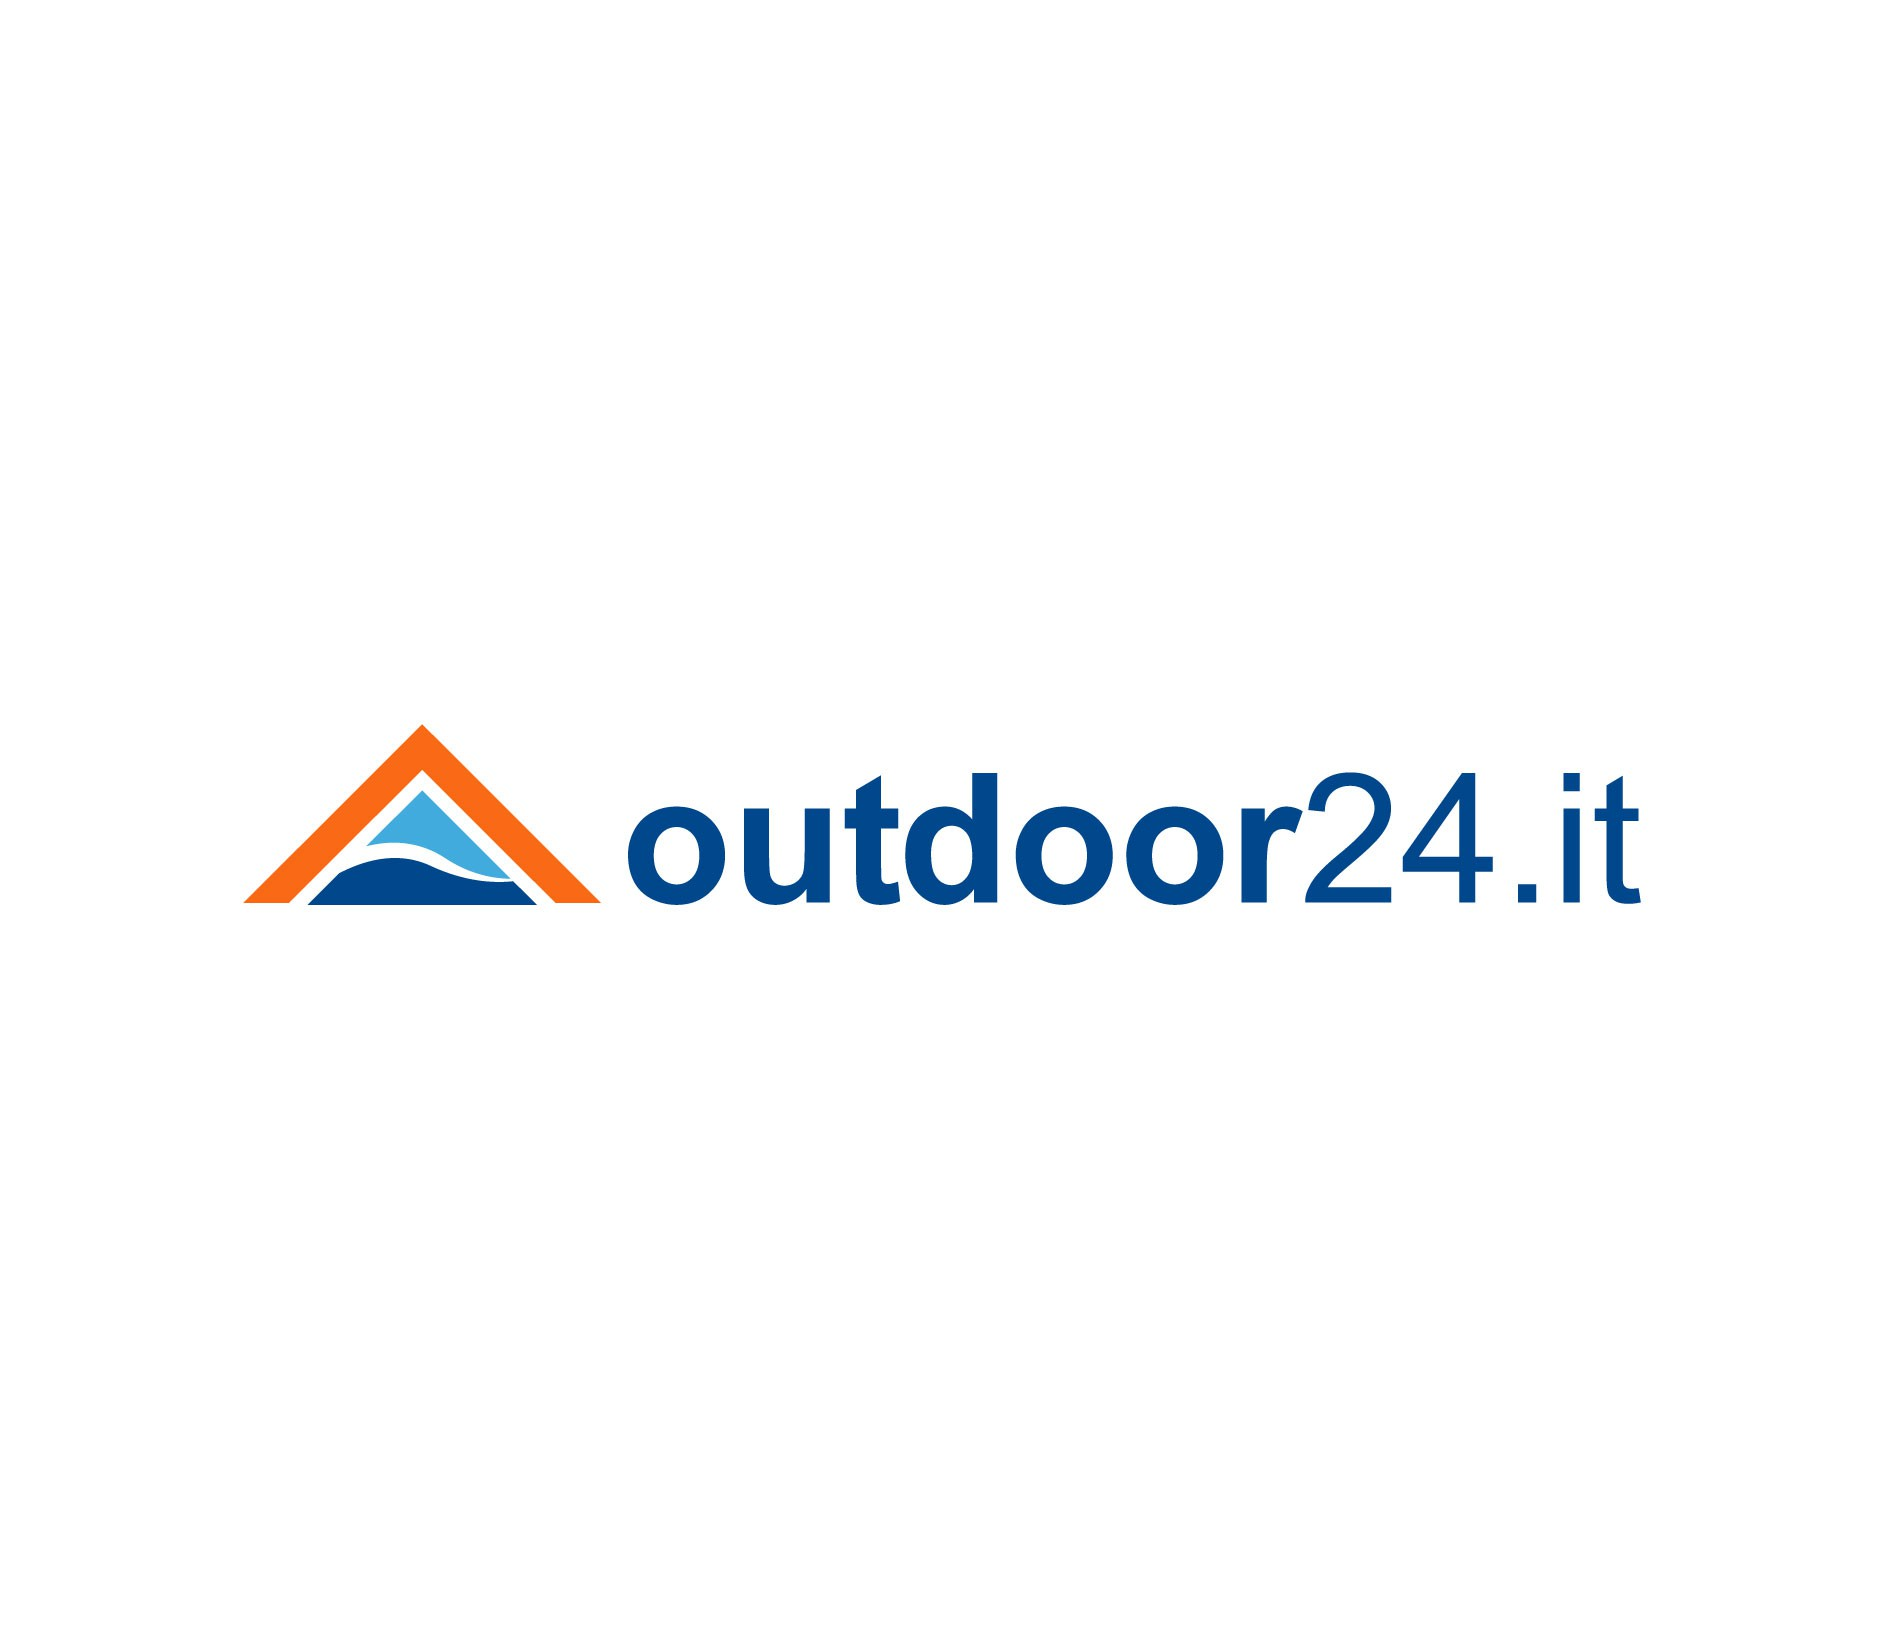 Help outdoor24.it with a new logo